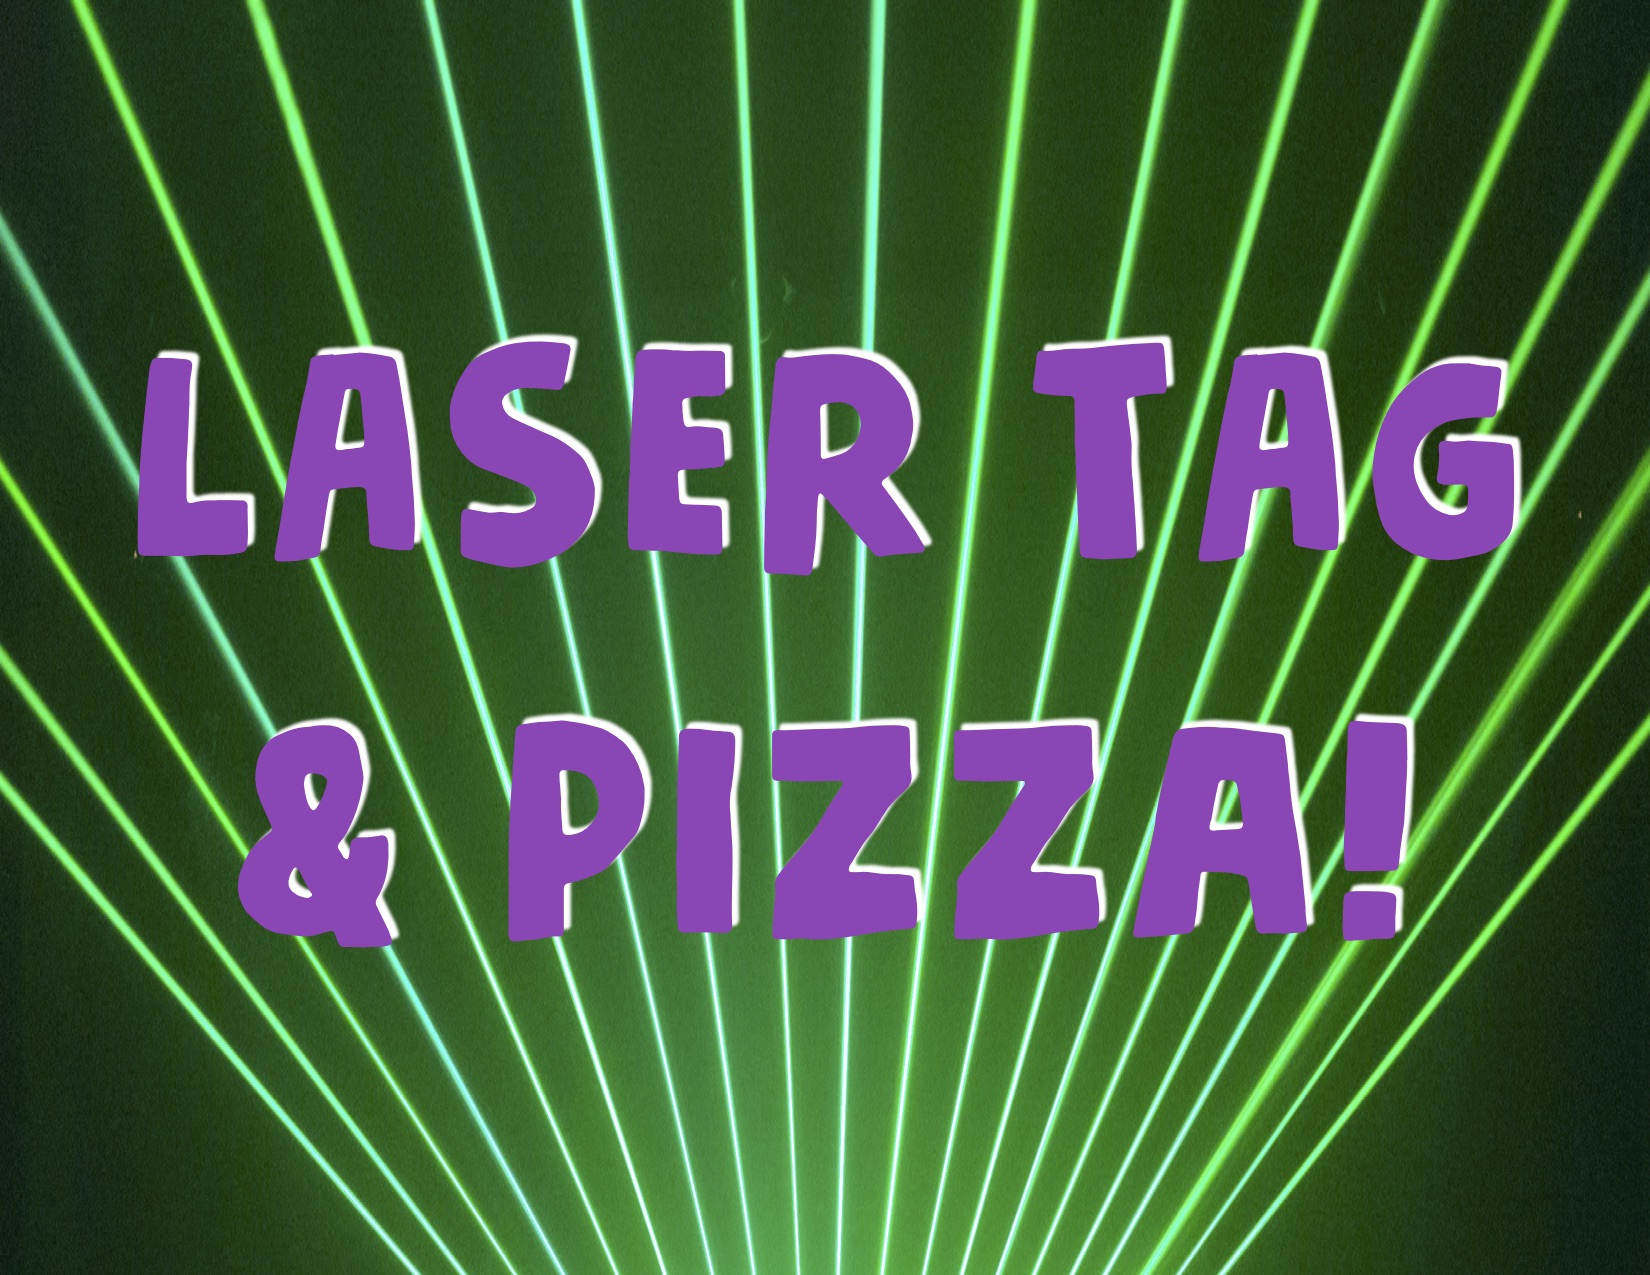 Laser Tag  graphic.jpg